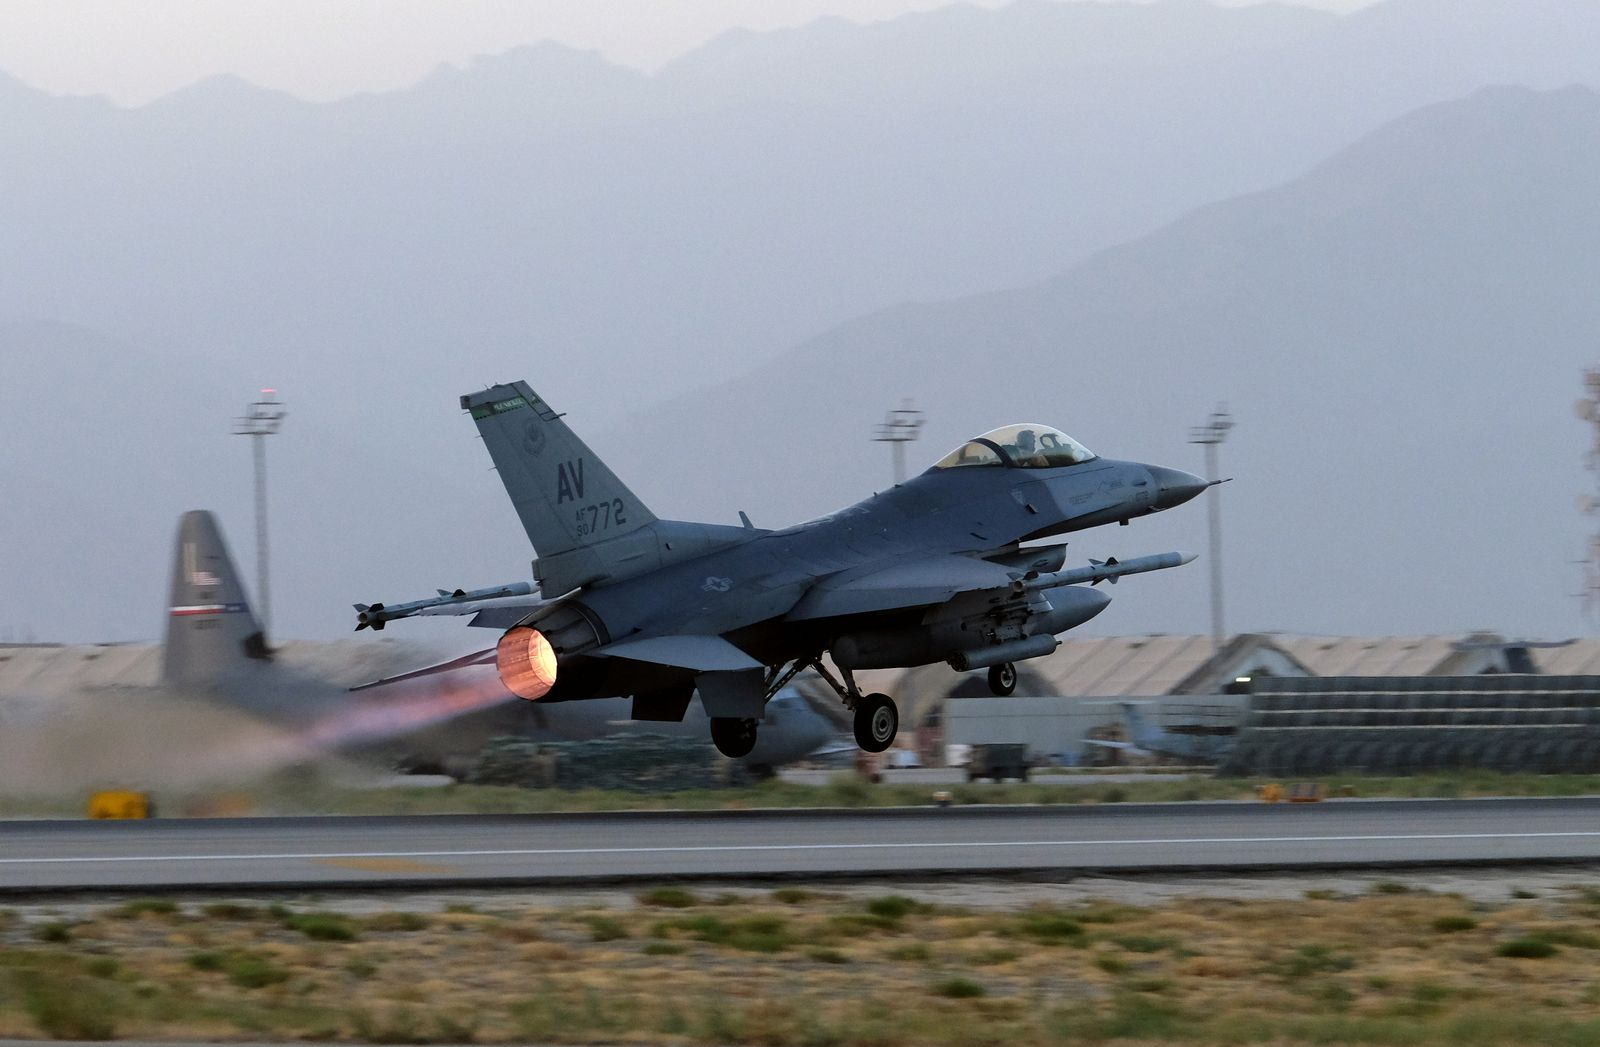 A U.S. Air Force F-16 Fighting Falcon aircraft takes off for a nighttime mission at Bagram Airfield